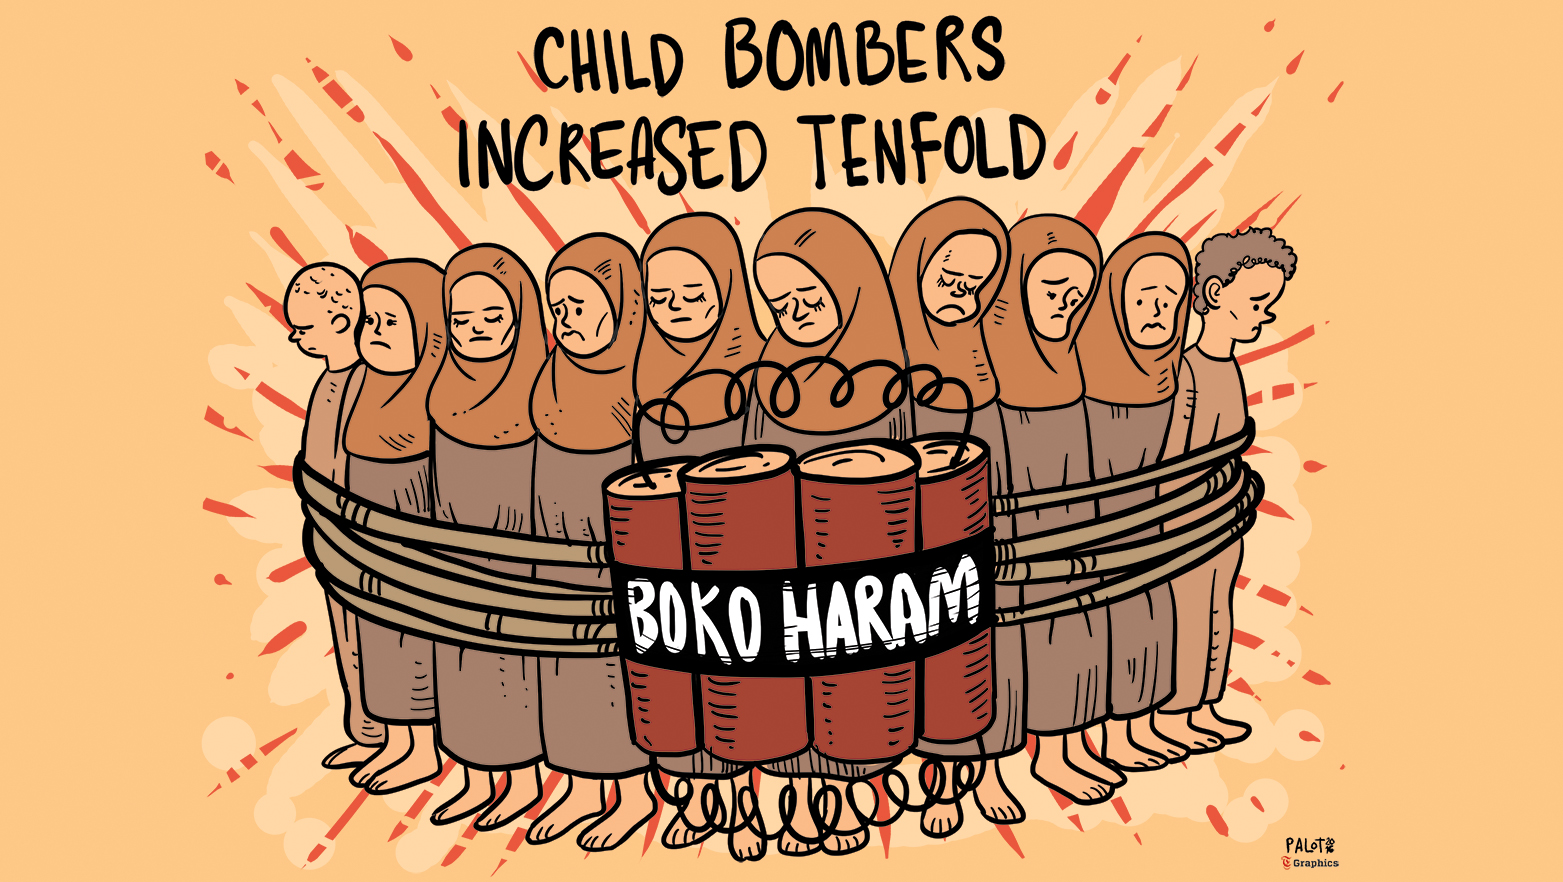 Child bombers used by Boko Haram increases tenfold